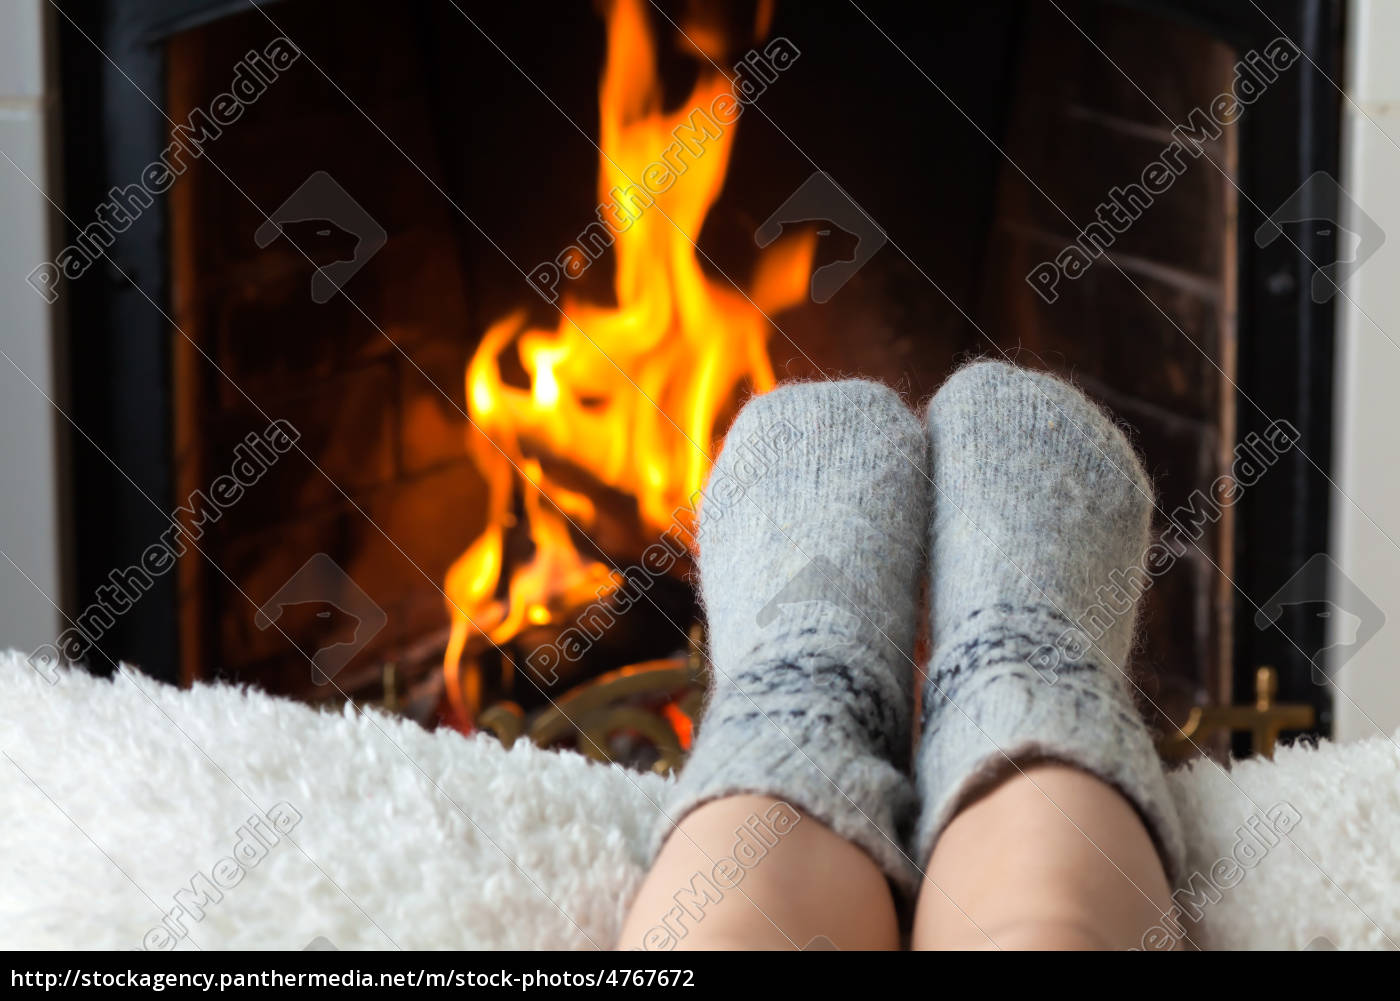 children's, feet, are, heated, in, the - 4767672